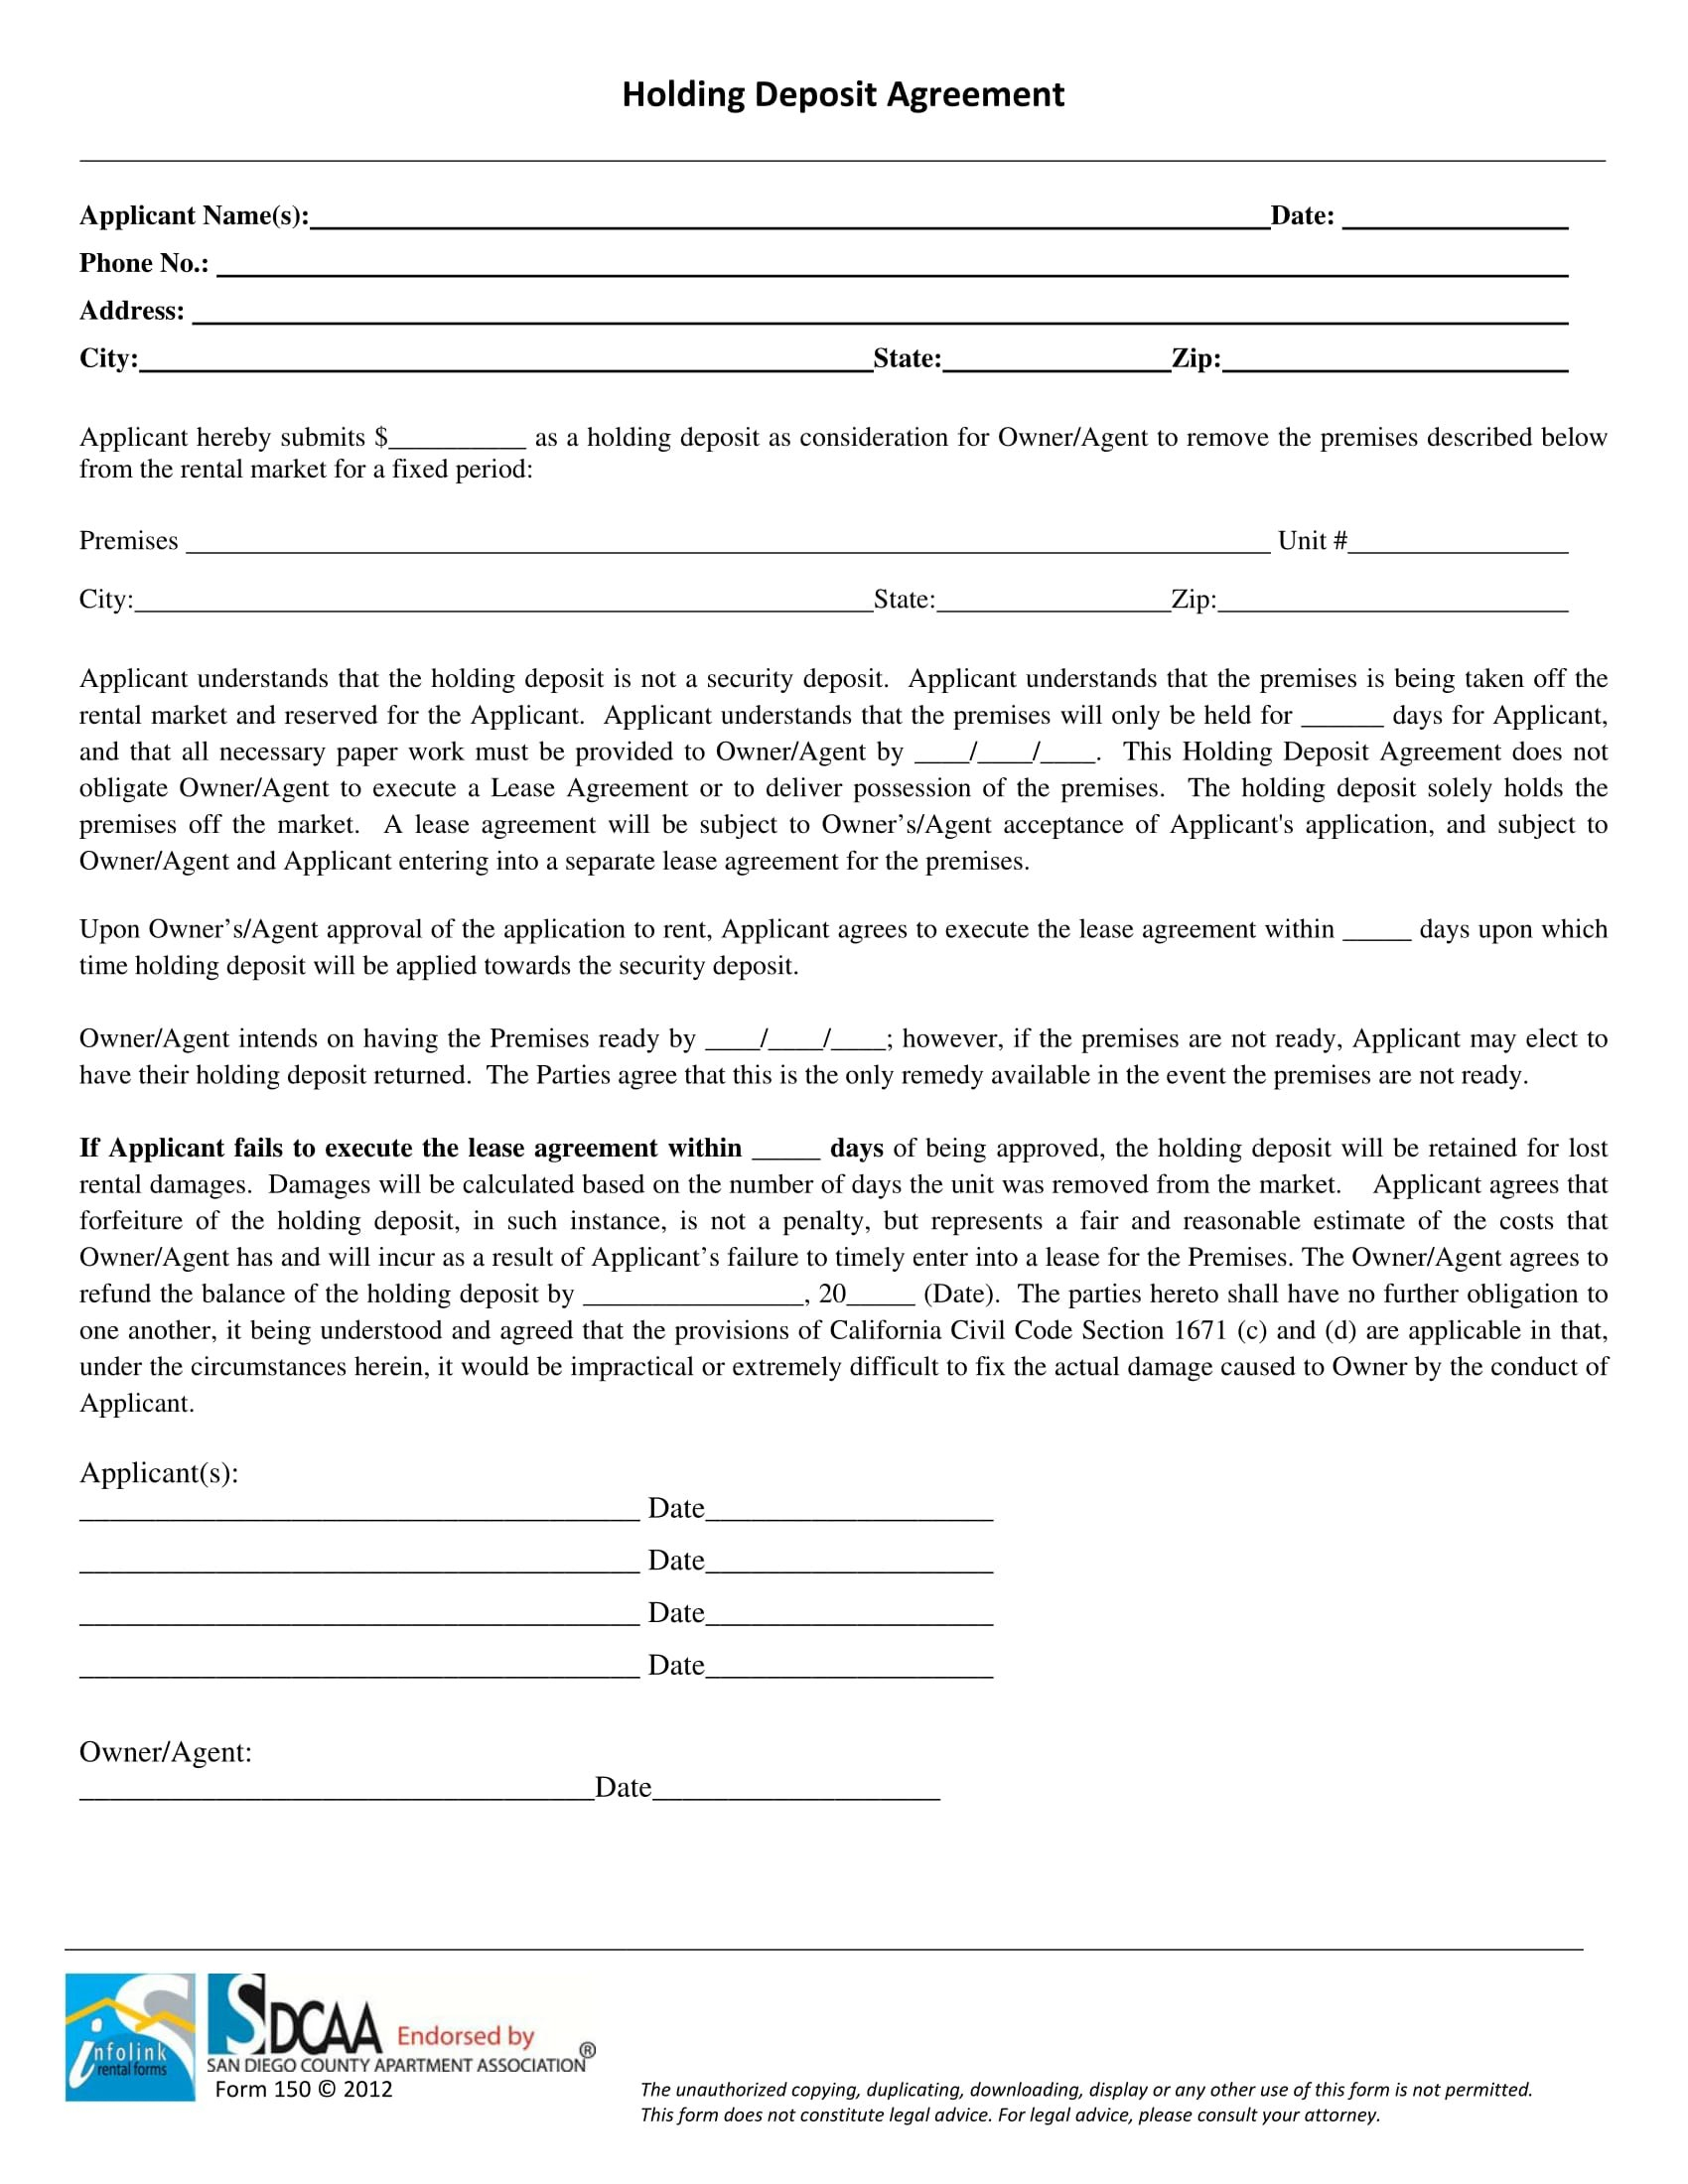 Landlord Forms Landlord Agreements Notice Forms Eviction For Holding Deposit Agreement Template